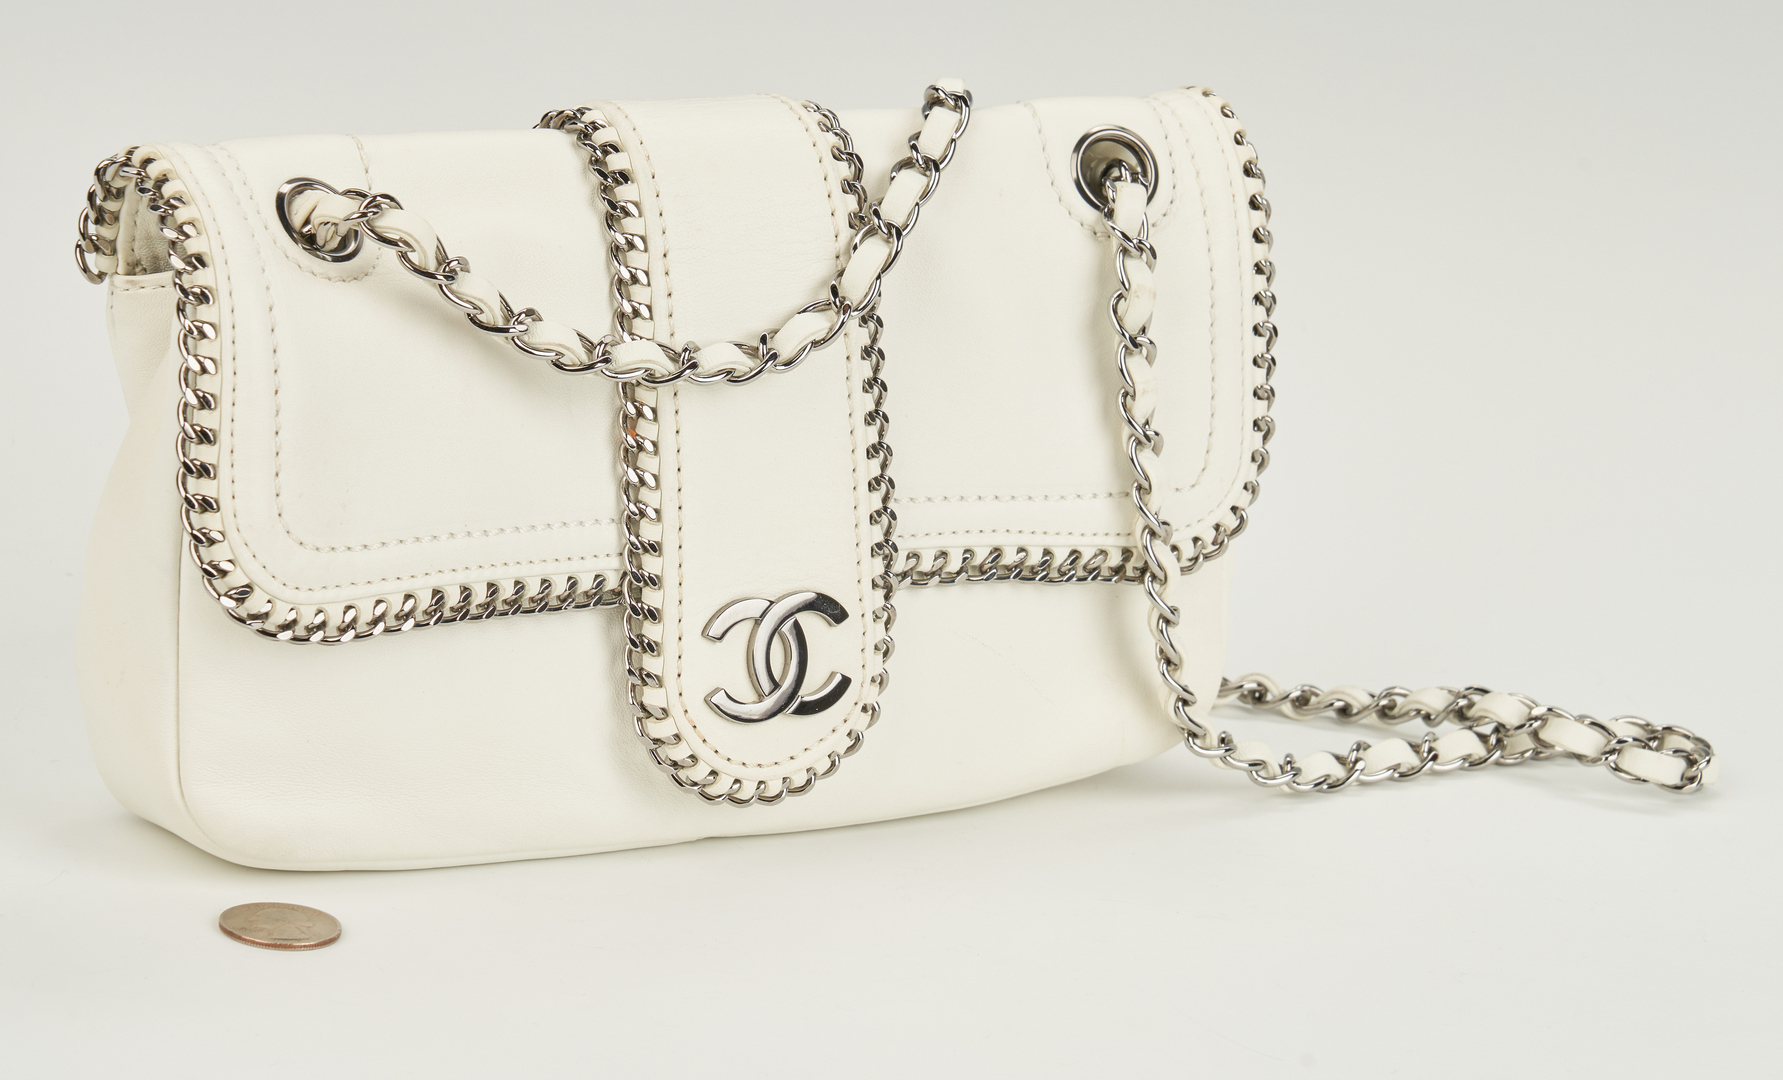 Lot 709: Chanel Madison Single Flap White Bag, Medium